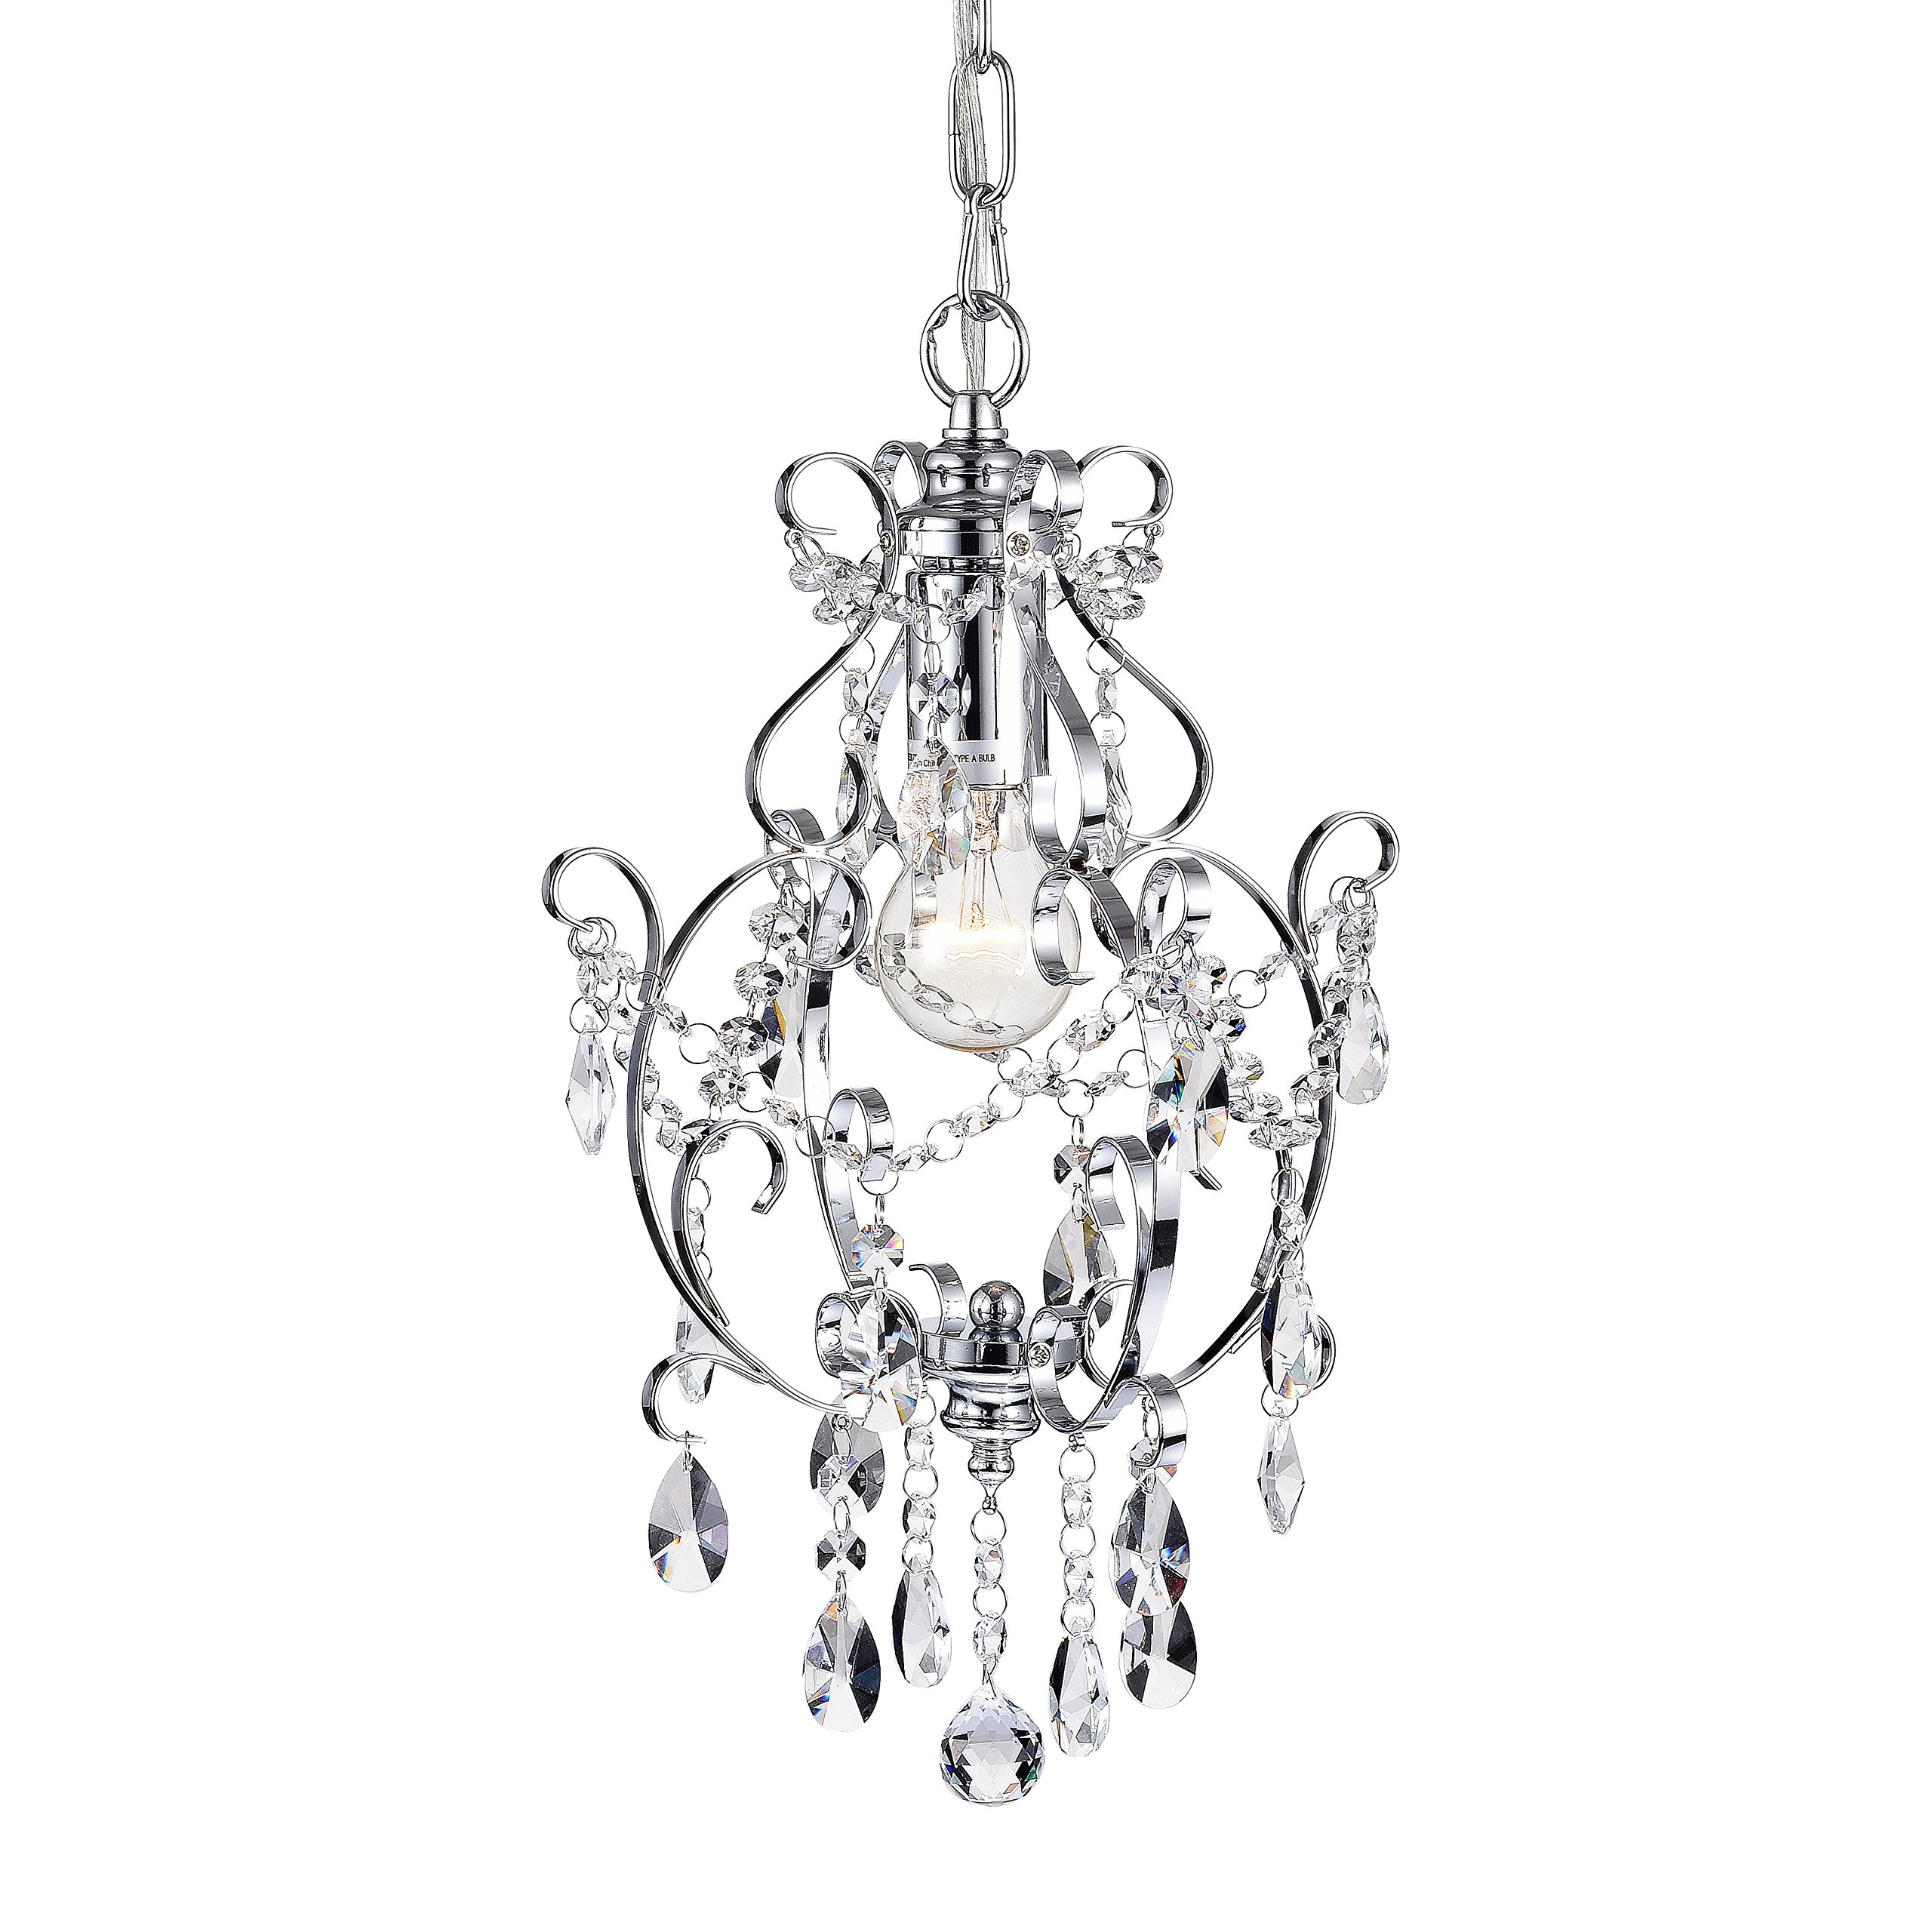 Amorette chrome mini chandeliers crystal chandelier lighting 1 light ceiling light fixtures